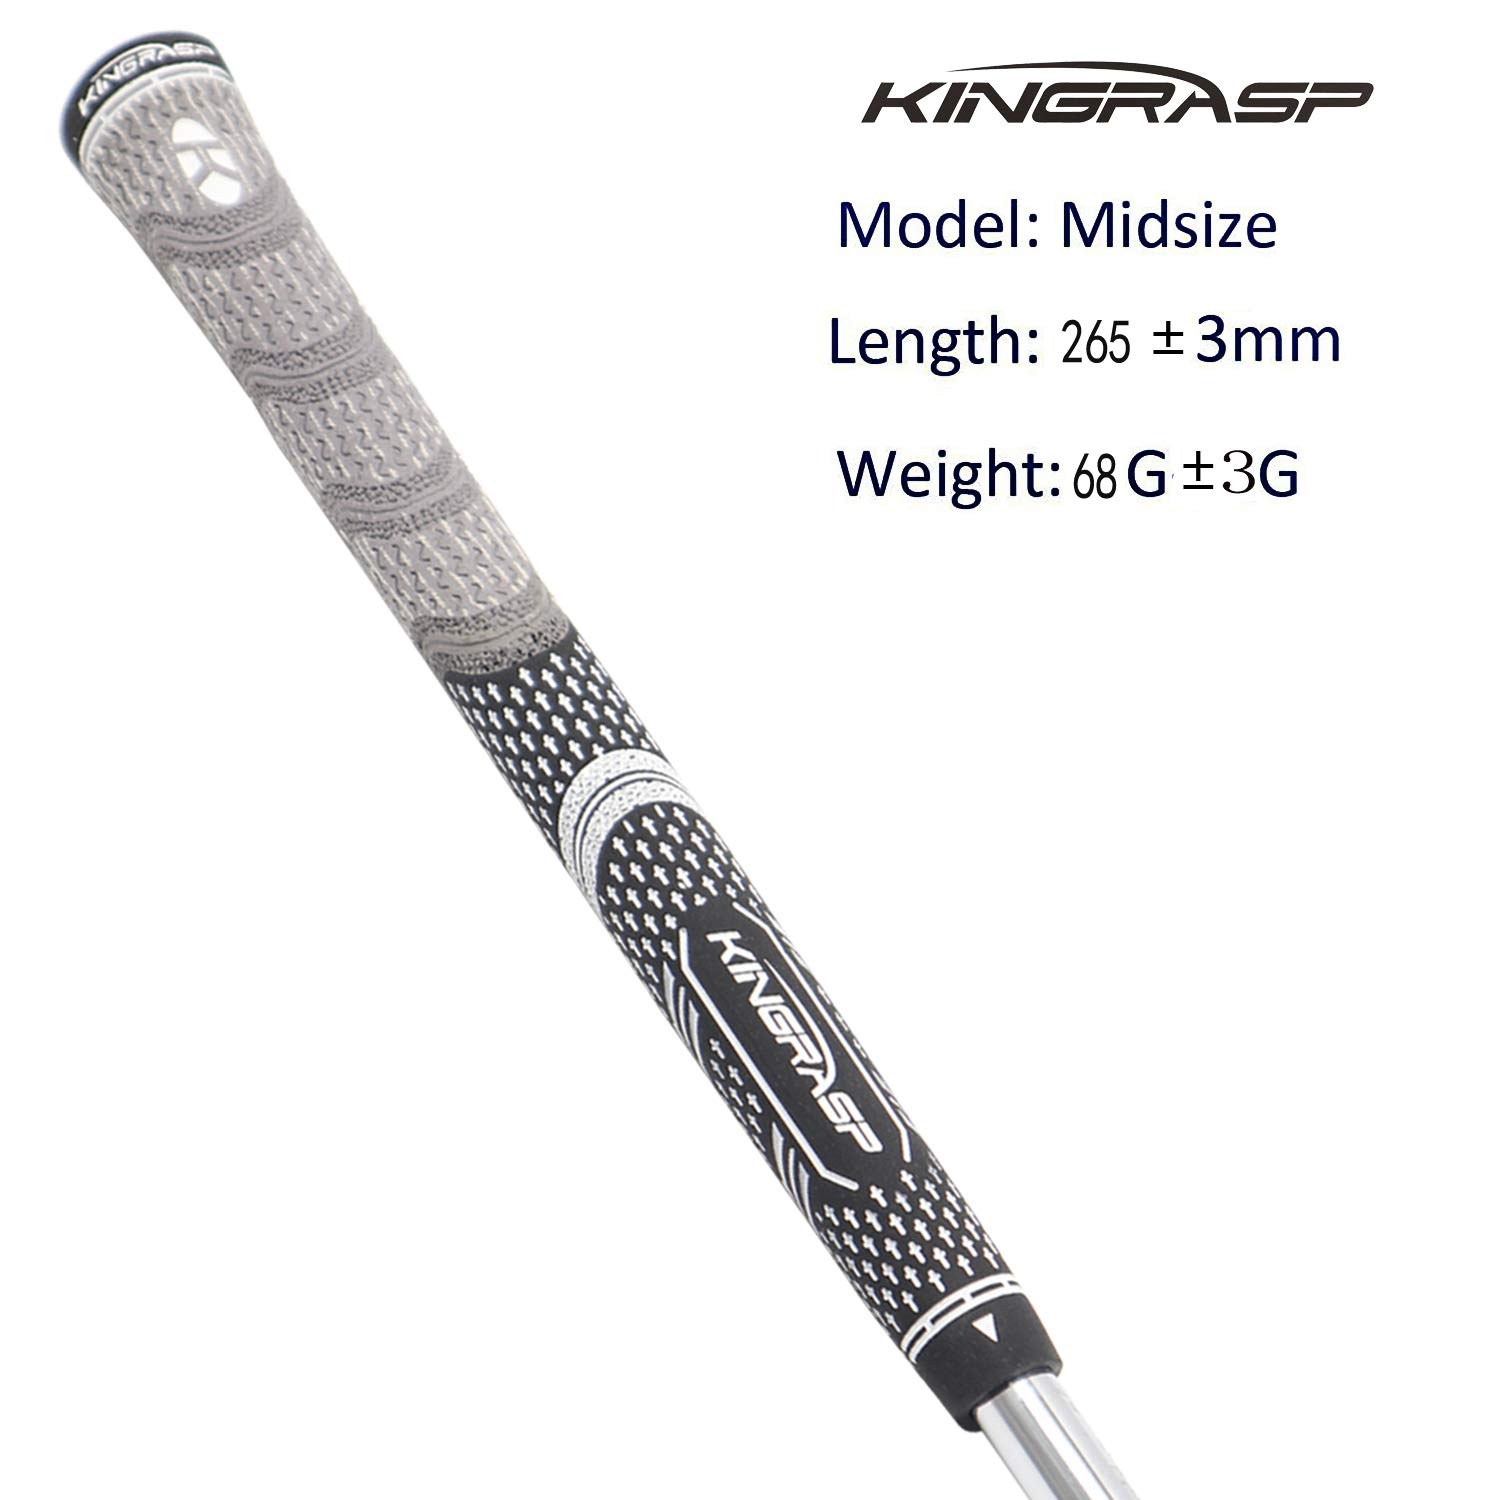 KINGRASP Multi Compound Golf Grips Set of 13 Golf Grip Standard midsize Size - All Weather Rubber Golf Club Grips Ideal for Clubs Wedges Drivers Irons Hybrids (Gray/Black, midsize) by KINGRASP (Image #2)